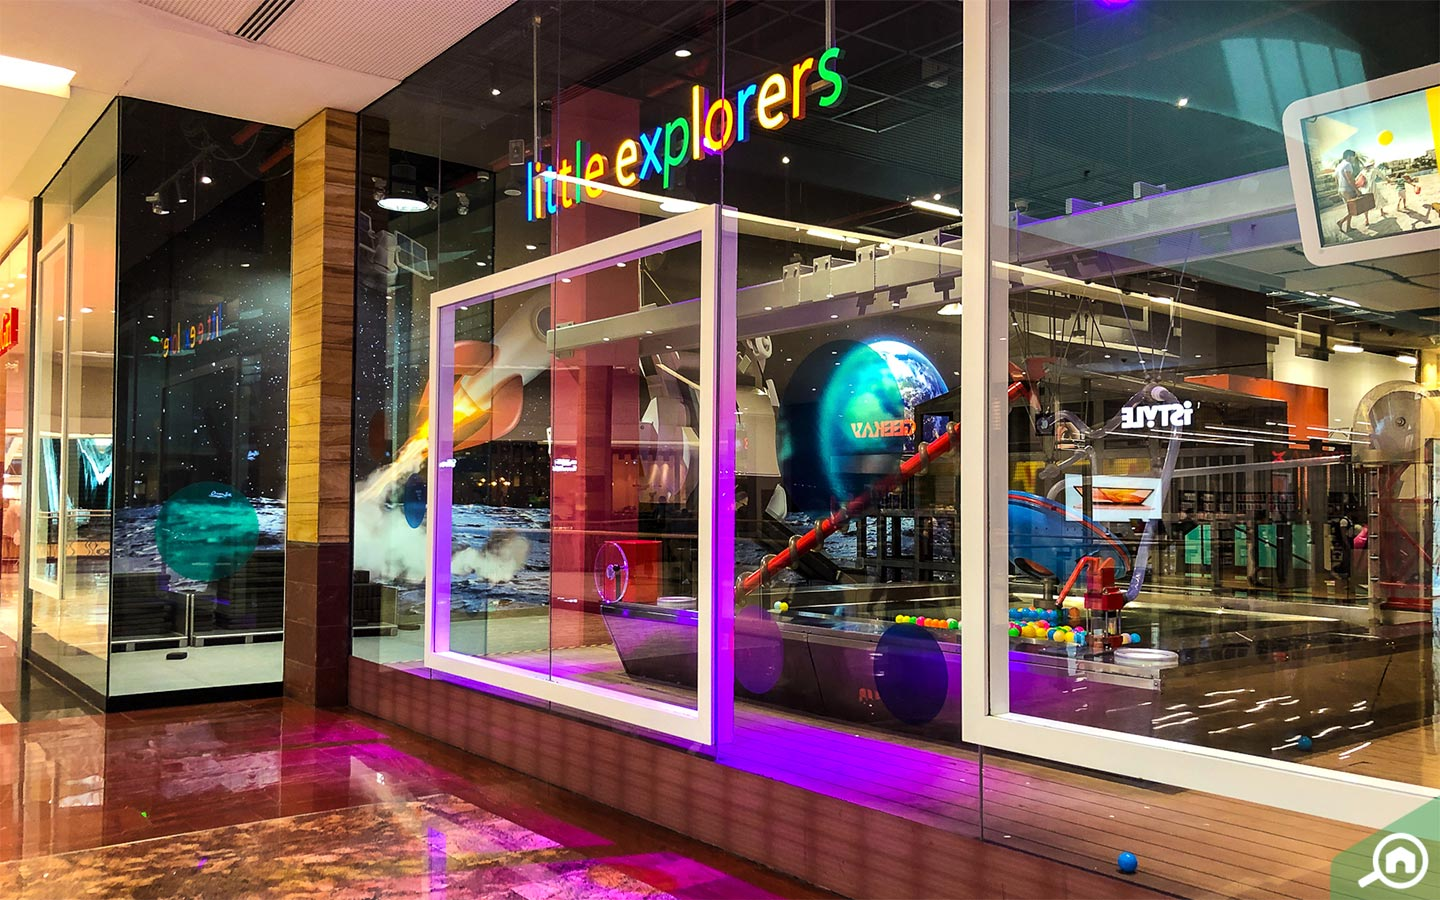 Little Explorers is an interesting facility for kids at City Centre Mirdif.